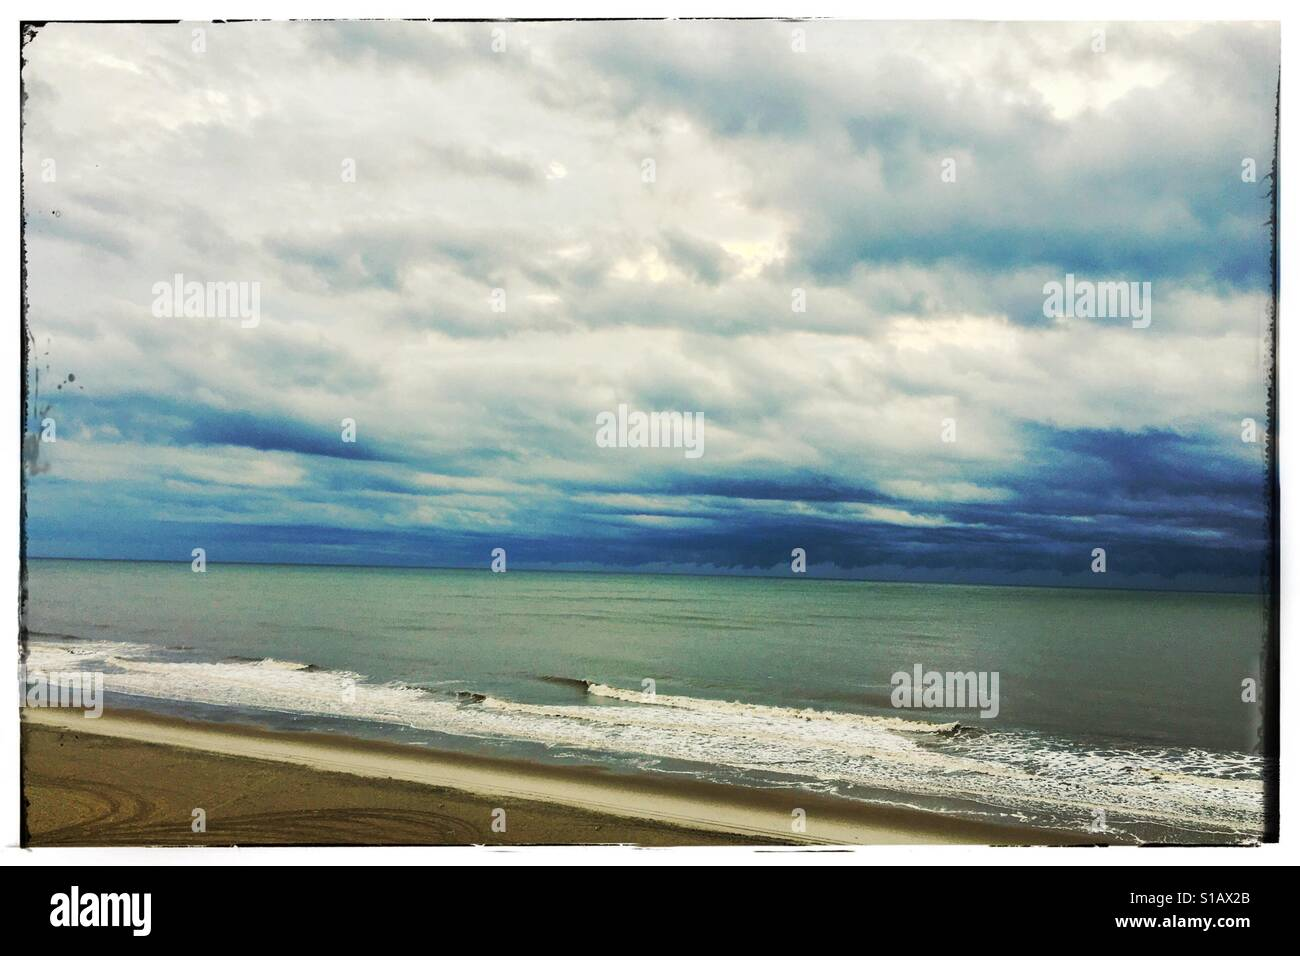 Clouds over the ocean - Stock Image